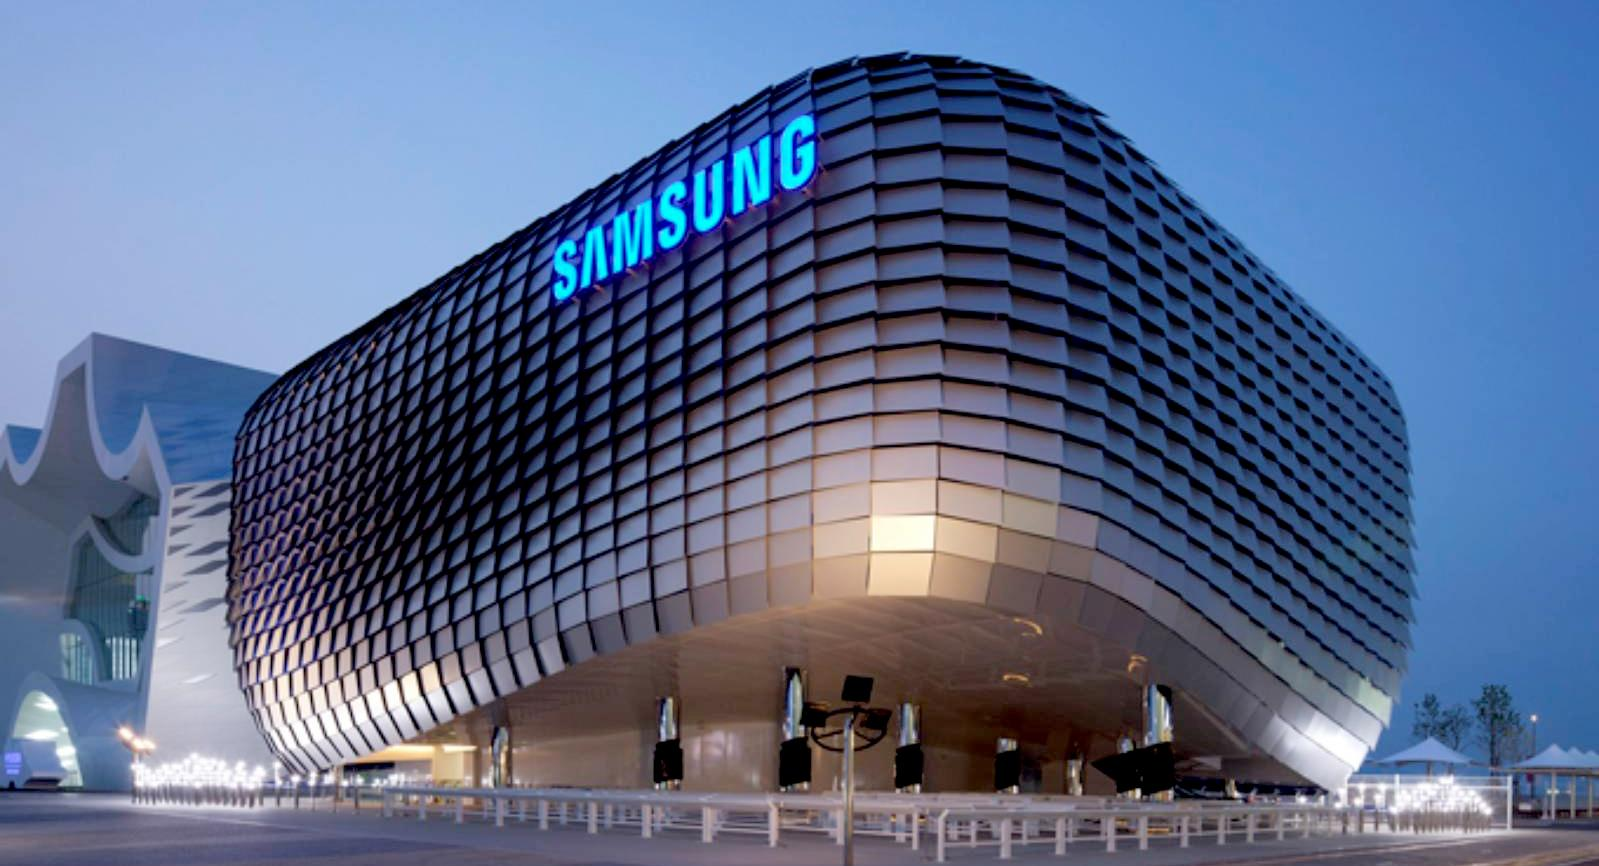 Samsung the 7th most valuable brand, according to Forbes